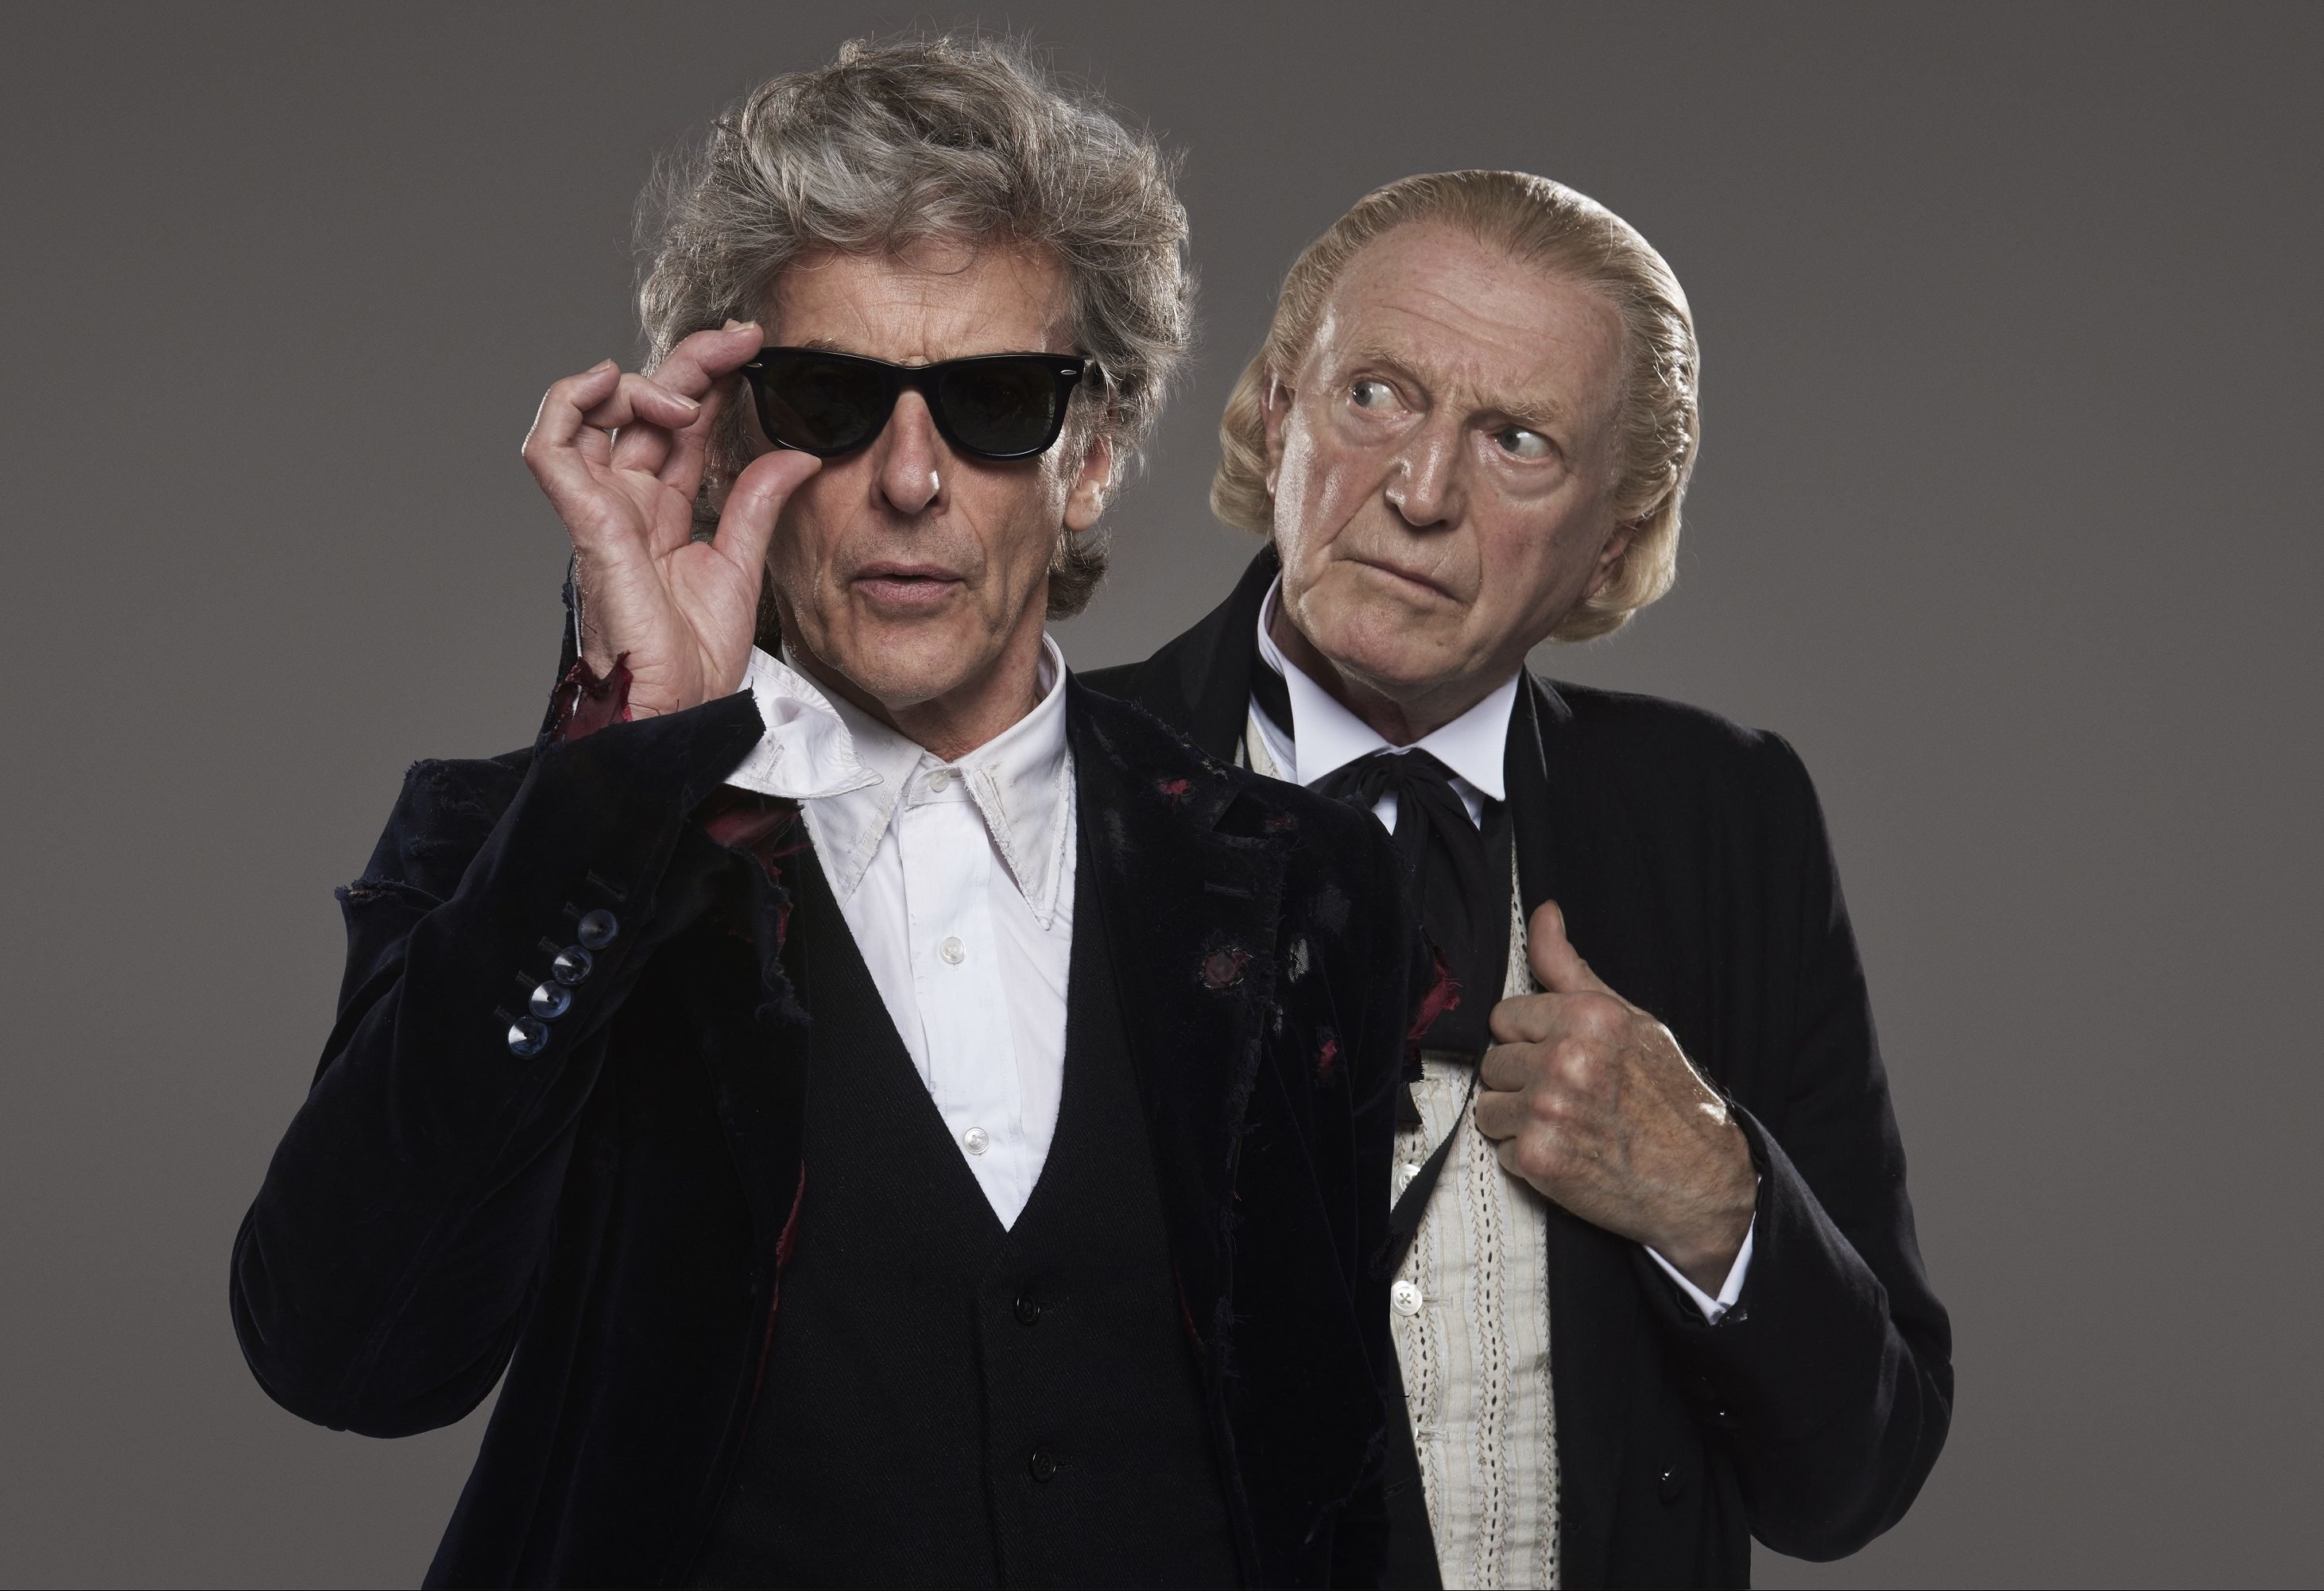 The Doctor (Peter Capaldi) and the First Doctor (David Bradley). (BBC/PA Wire)